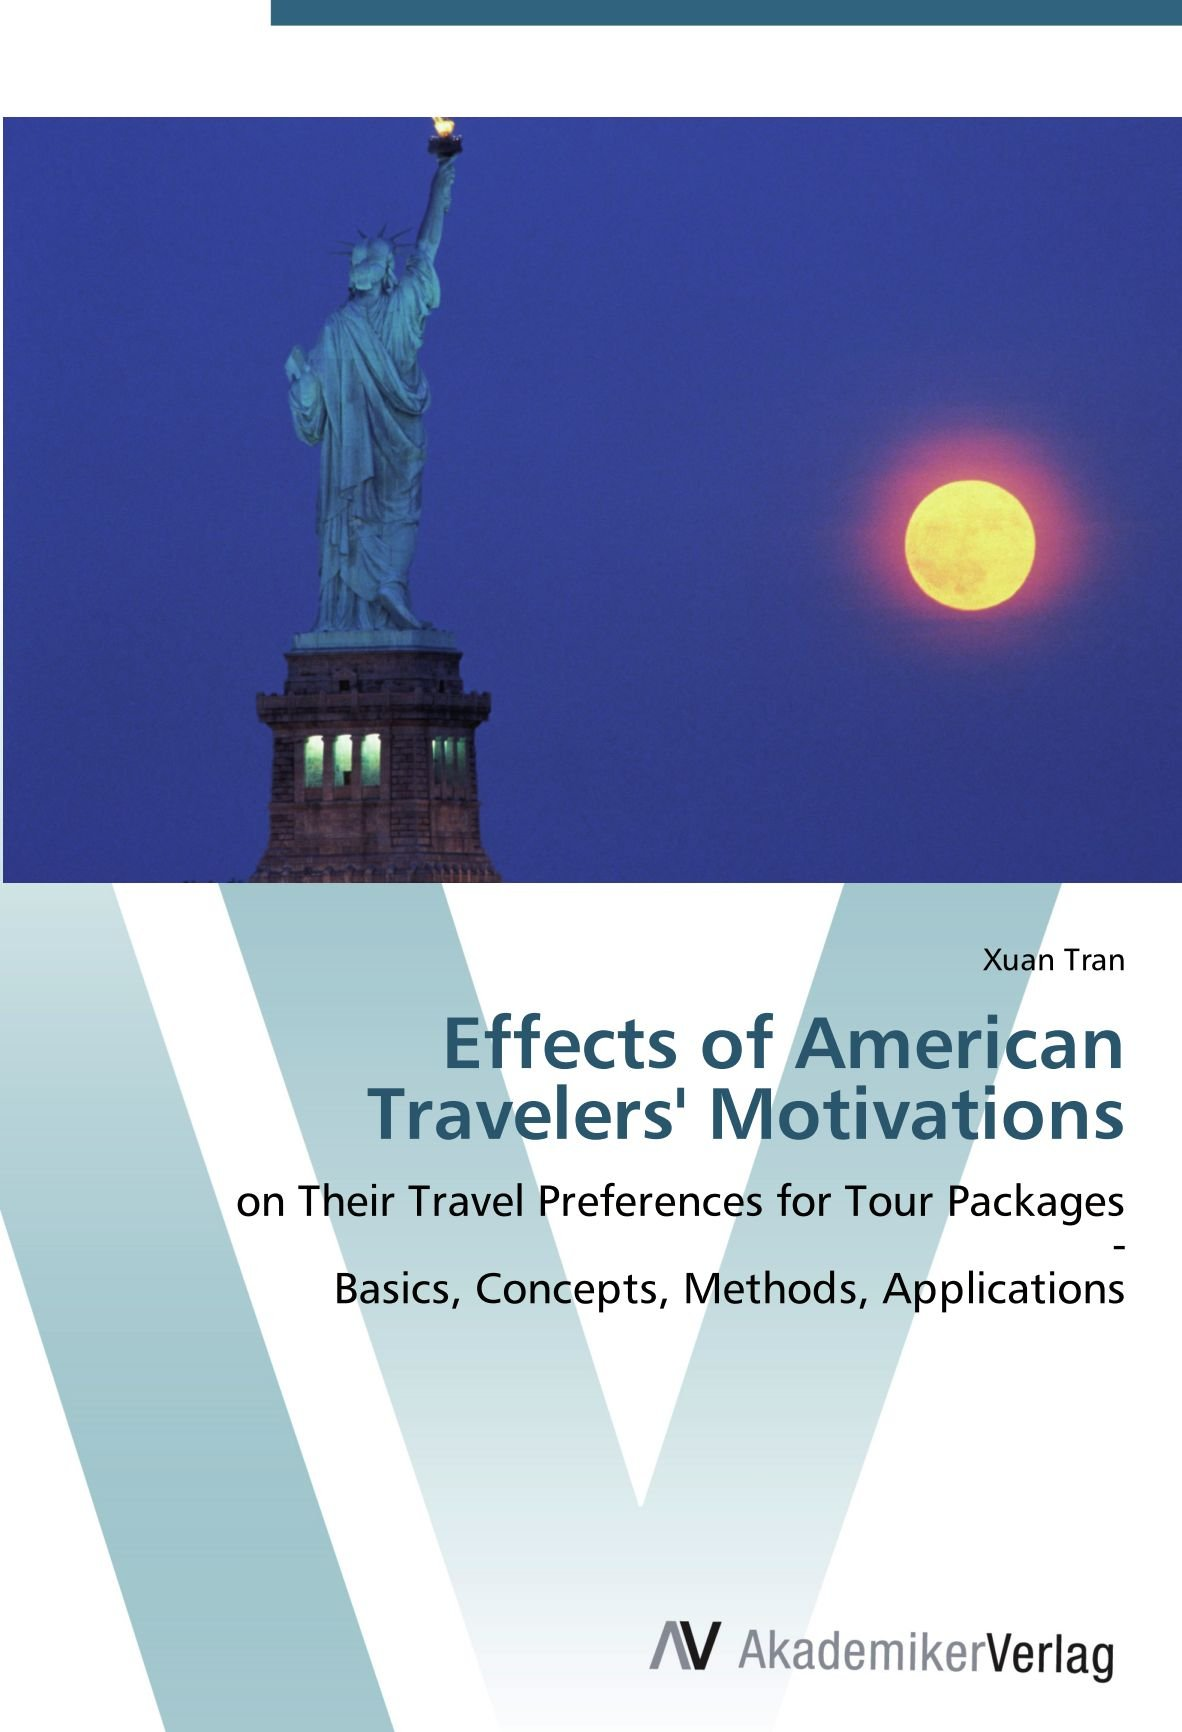 Effects of American Travelers' Motivations: on Their Travel Preferences for Tour Packages  -  Basics, Concepts, Methods, Applications (German Edition) pdf